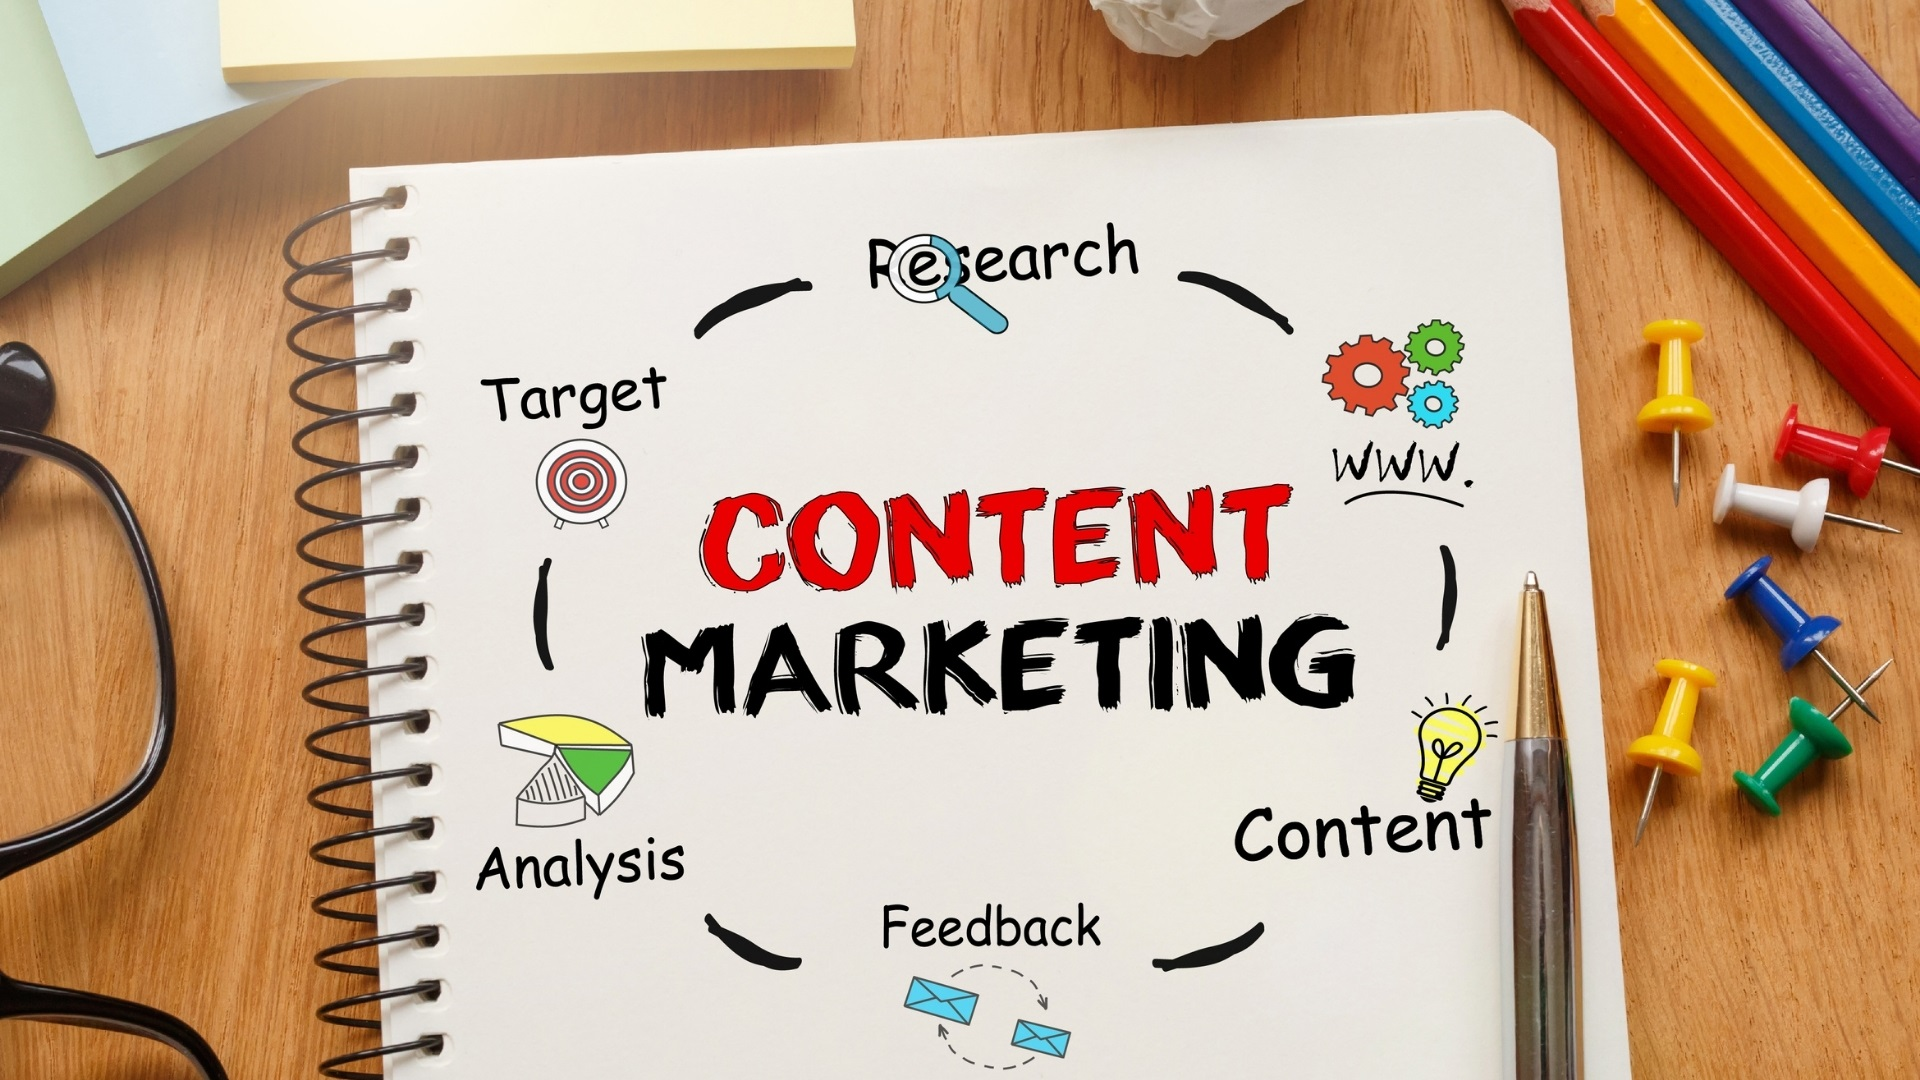 Content Marketing is one of the smartest ways to improve your website - Freelance NI Copywriter, Tall Paul Marketing